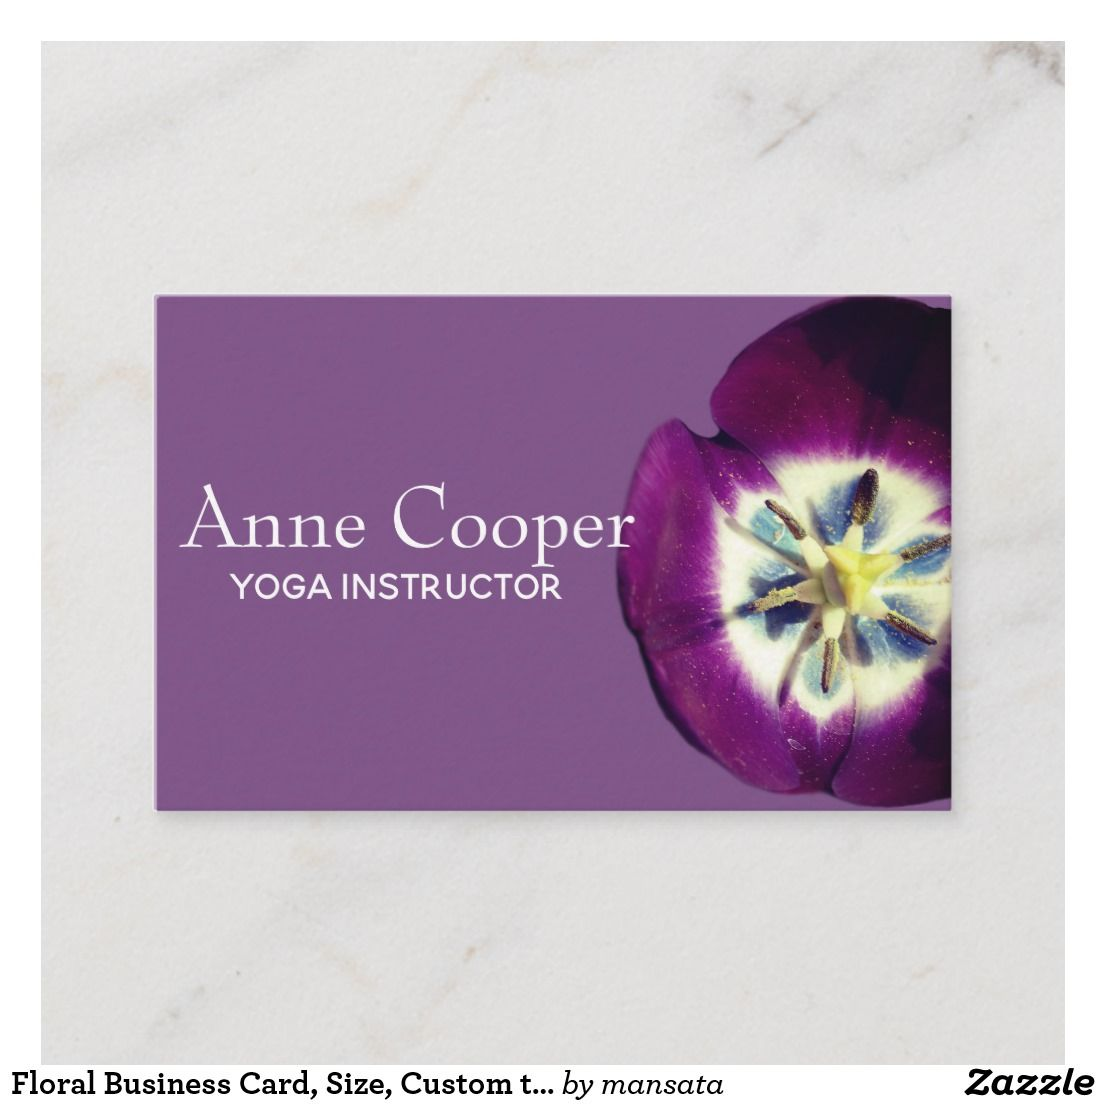 Floral Business Card, Size, Custom text Business Card ...